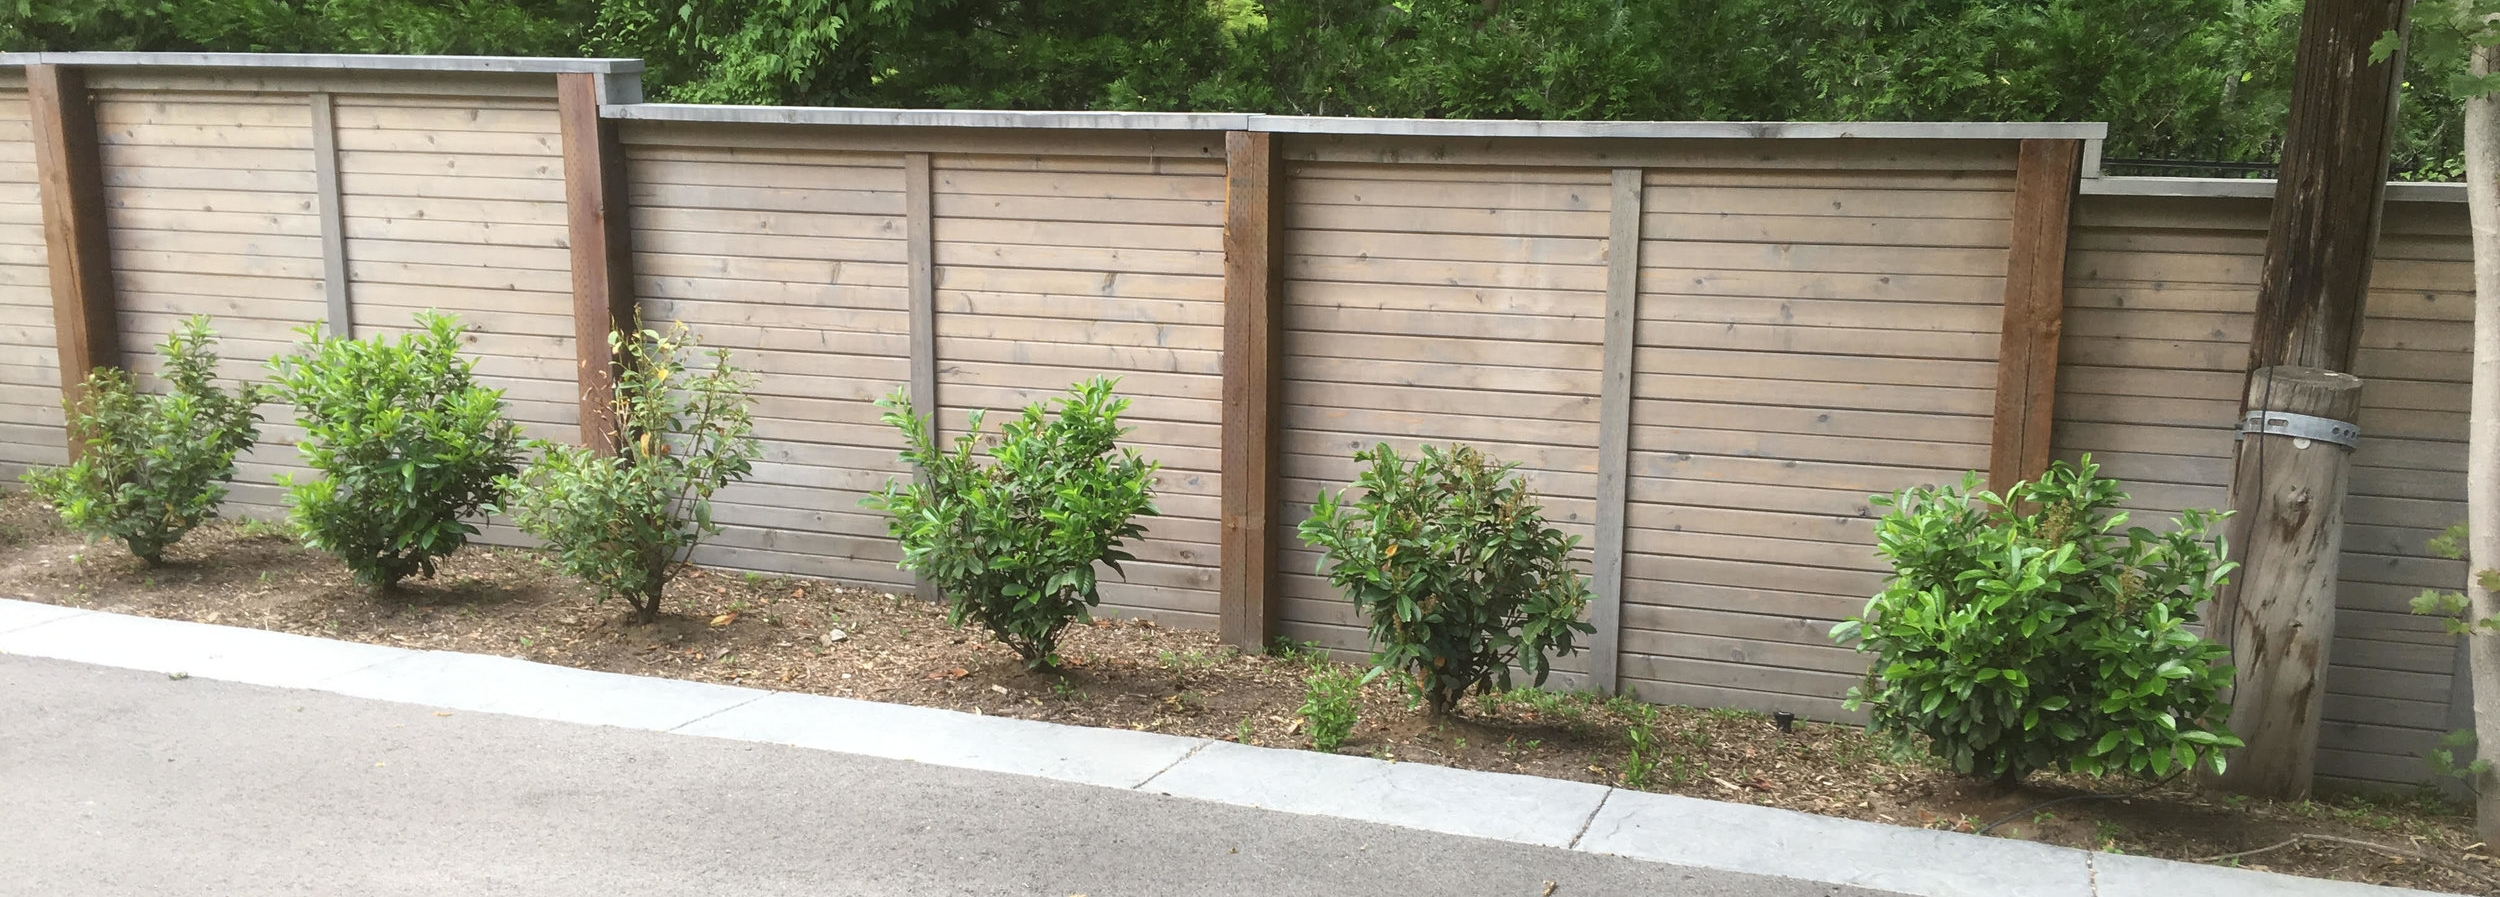 Can you guess which shrubs were treated with Carbon One and which were not?